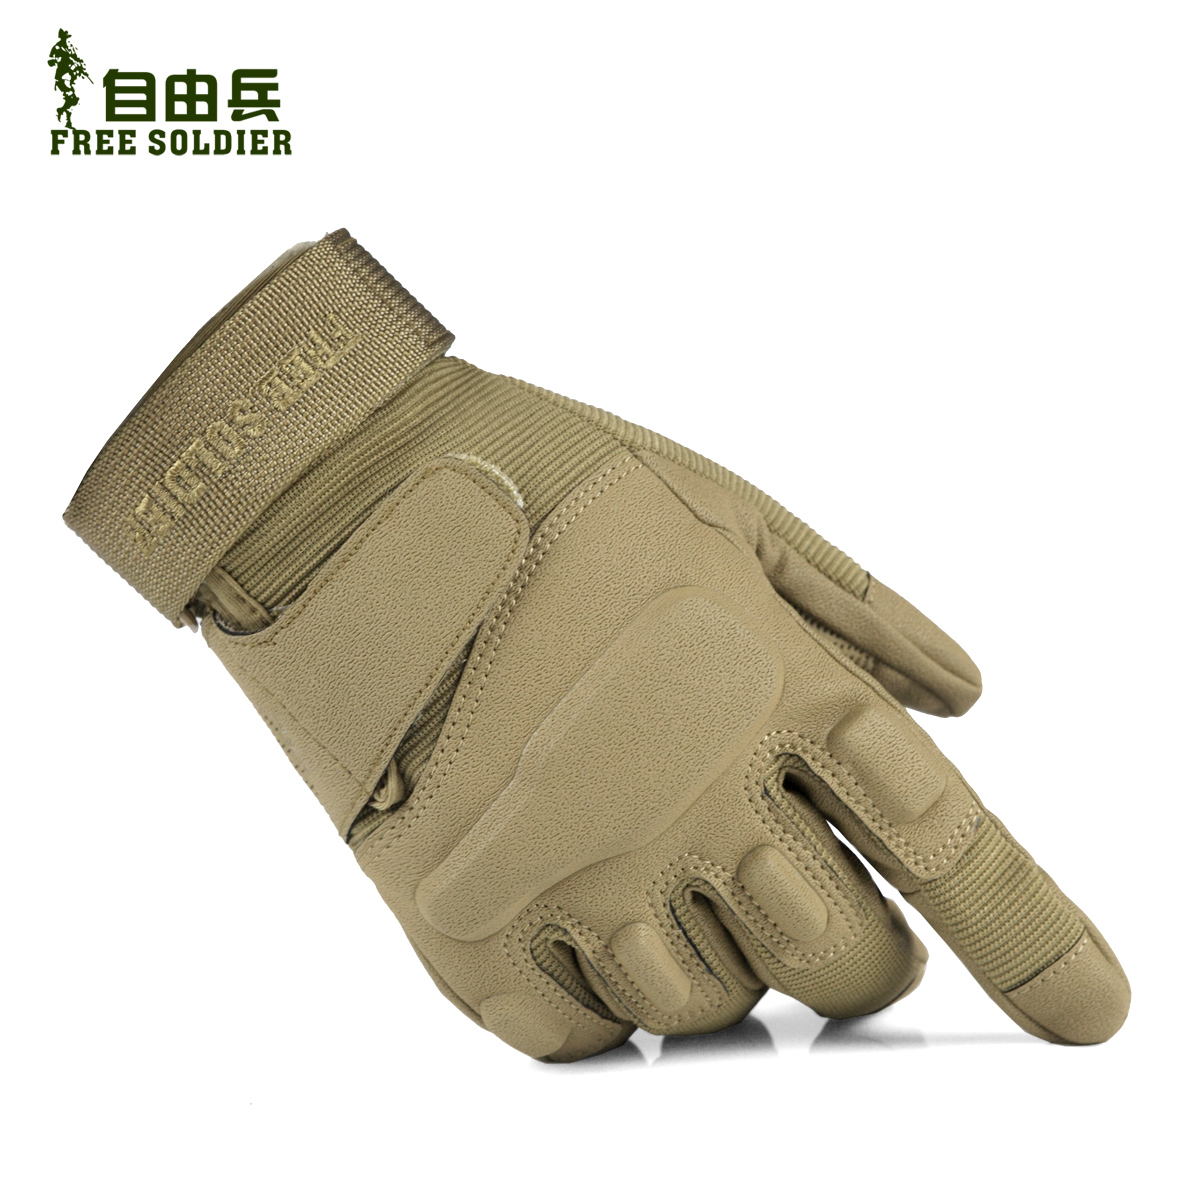 Outdoor Blackhawk Hell Storm special warfare terrain full finger gloves Tactical Army fans climbing